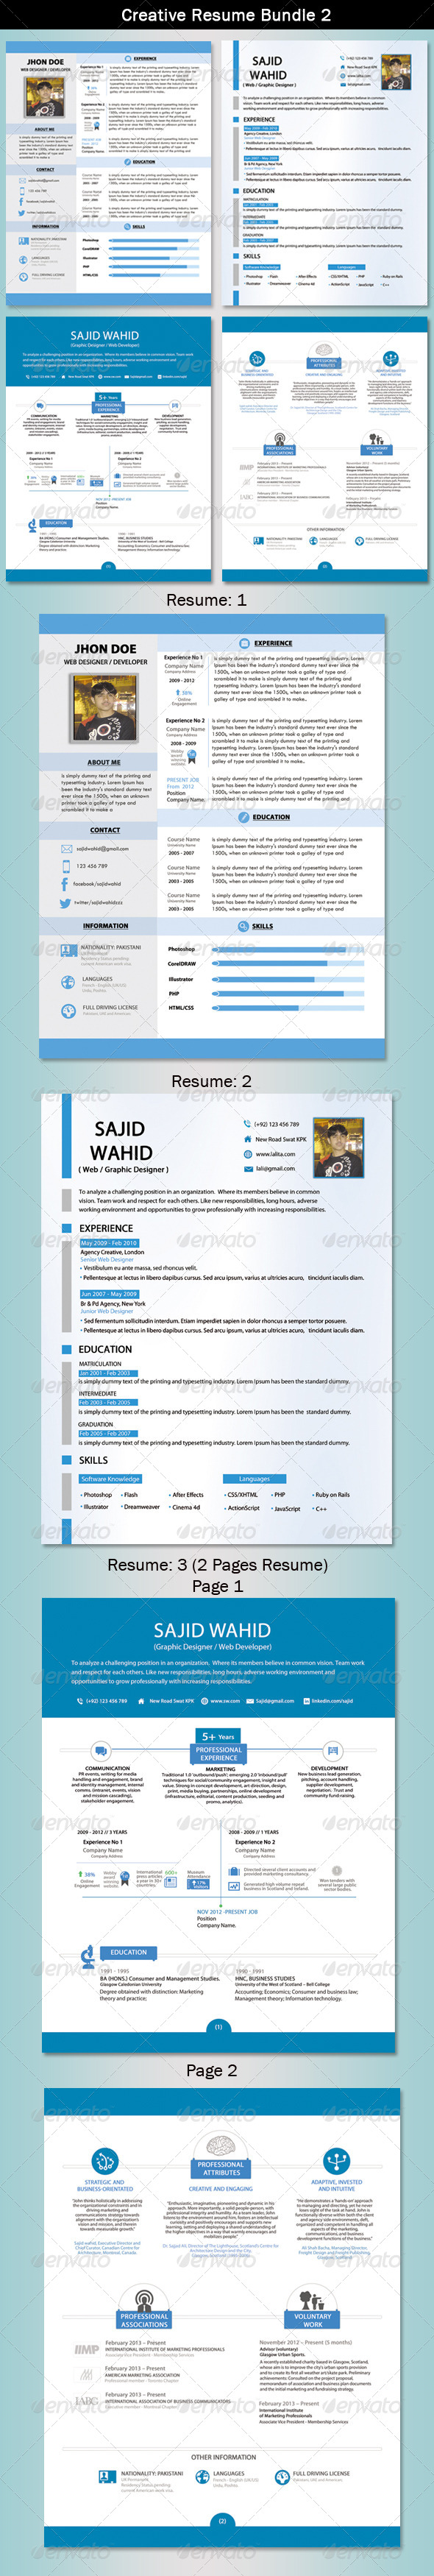 Resume Bundle 2